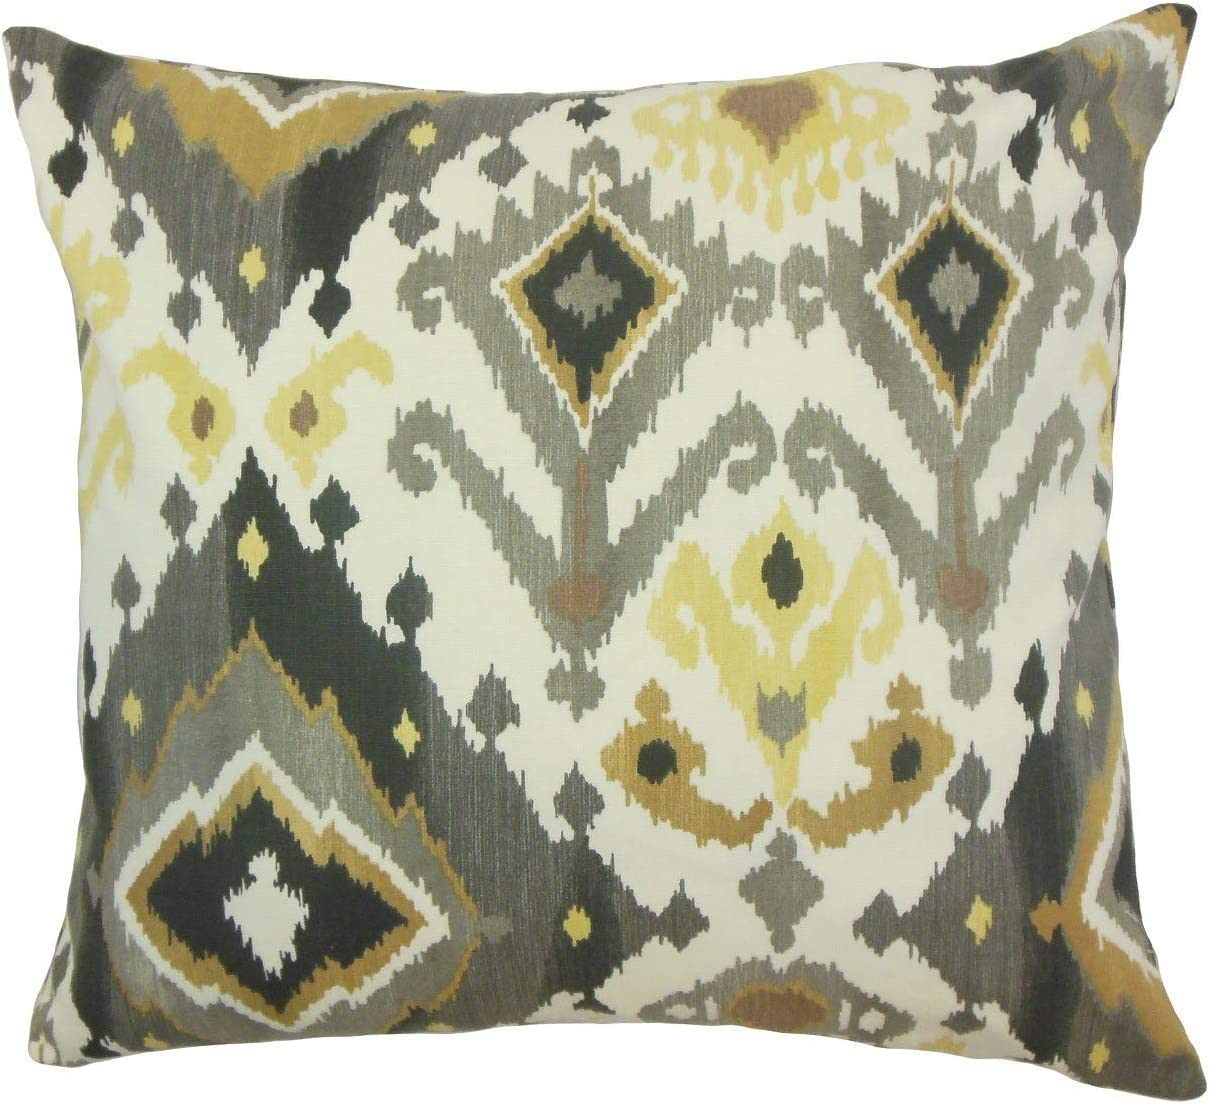 Amazon Com The Pillow Collection Qortni Ikat Black Camel Down Filled Throw Pillow Home Kitchen